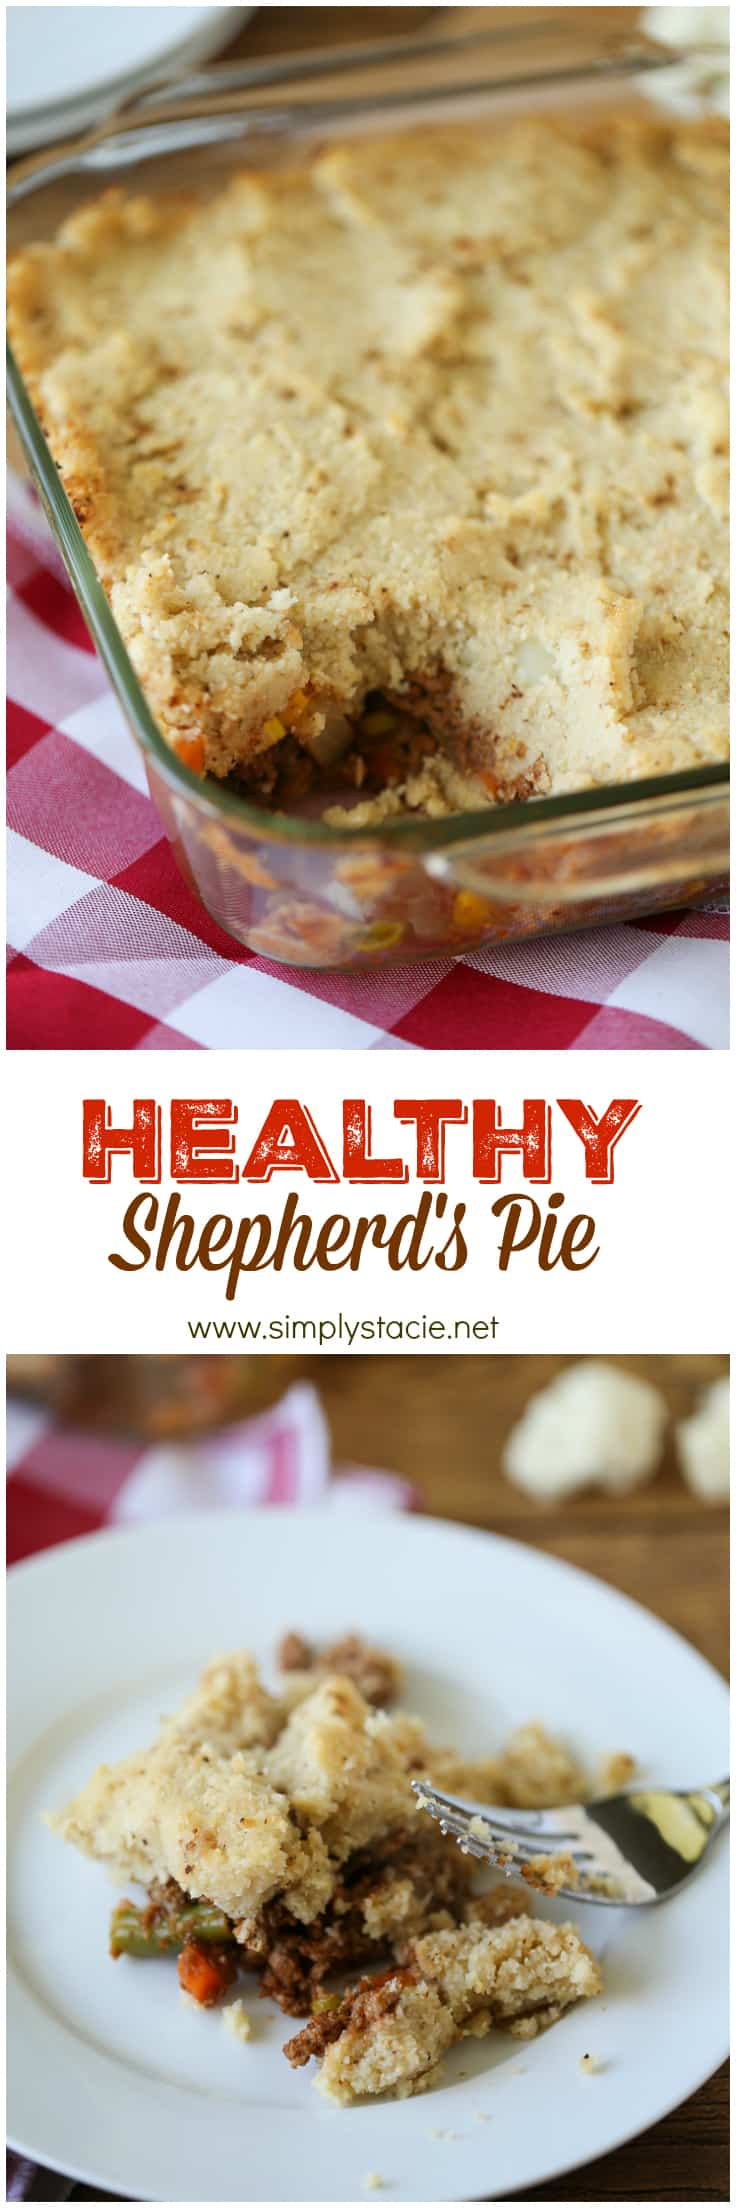 Healthy Shepherd's Pie - A comfort food classic recipe gets a makeover. This Healthy Shepherd's Pie has a mashed cauliflower topping and fibre filled filling. Delish!